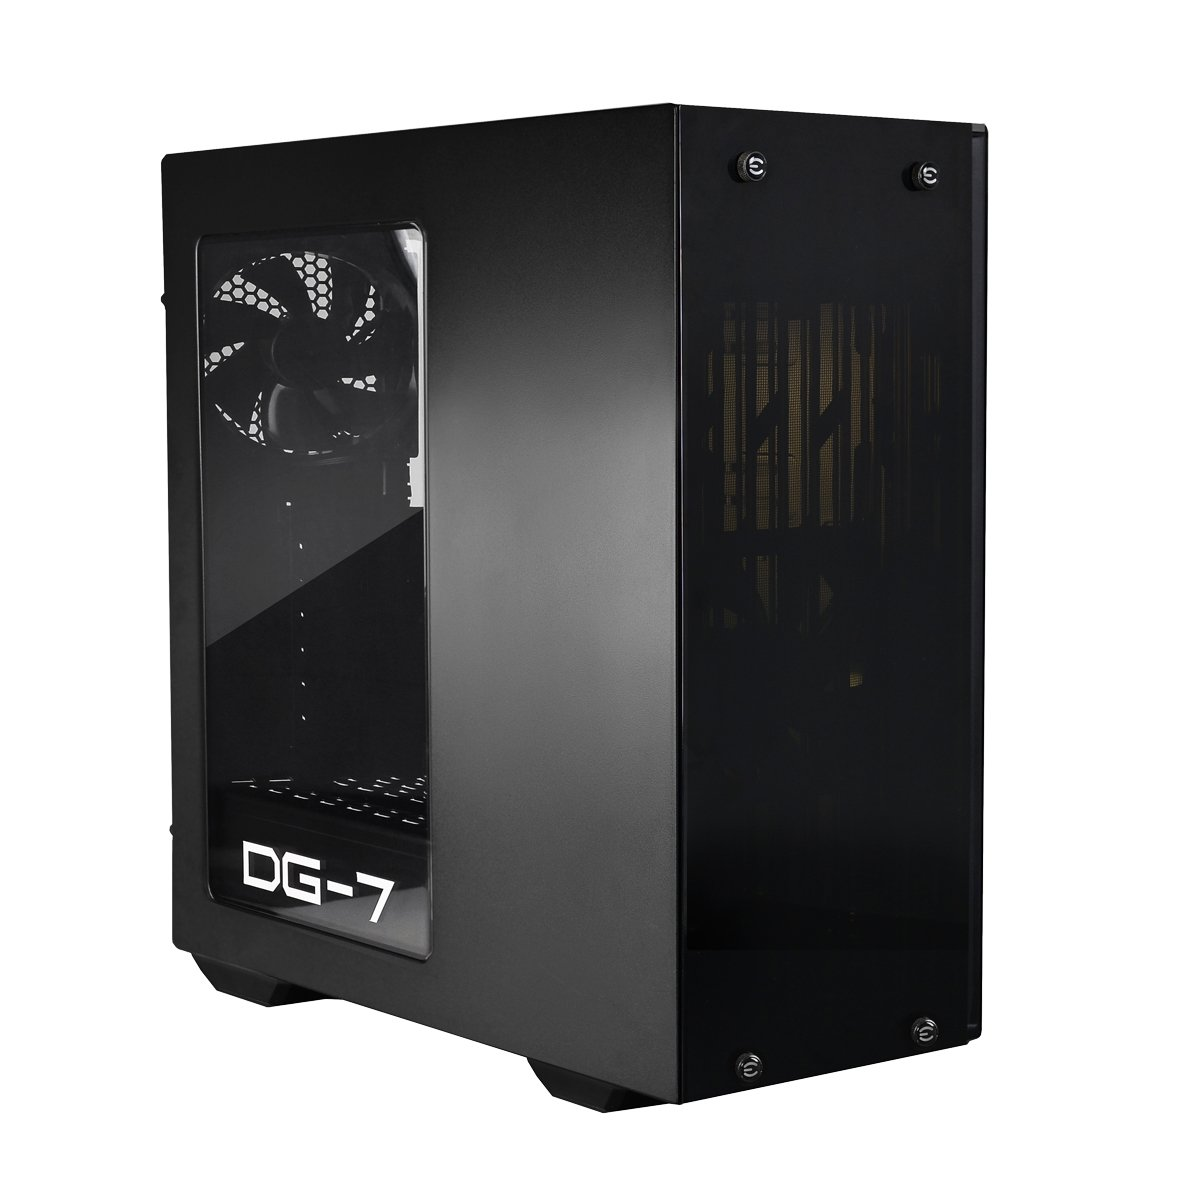 EVGA DG-73 Matte Black Mid-Tower, Acrylic Window, Gaming Case 130-P0-0020-KR